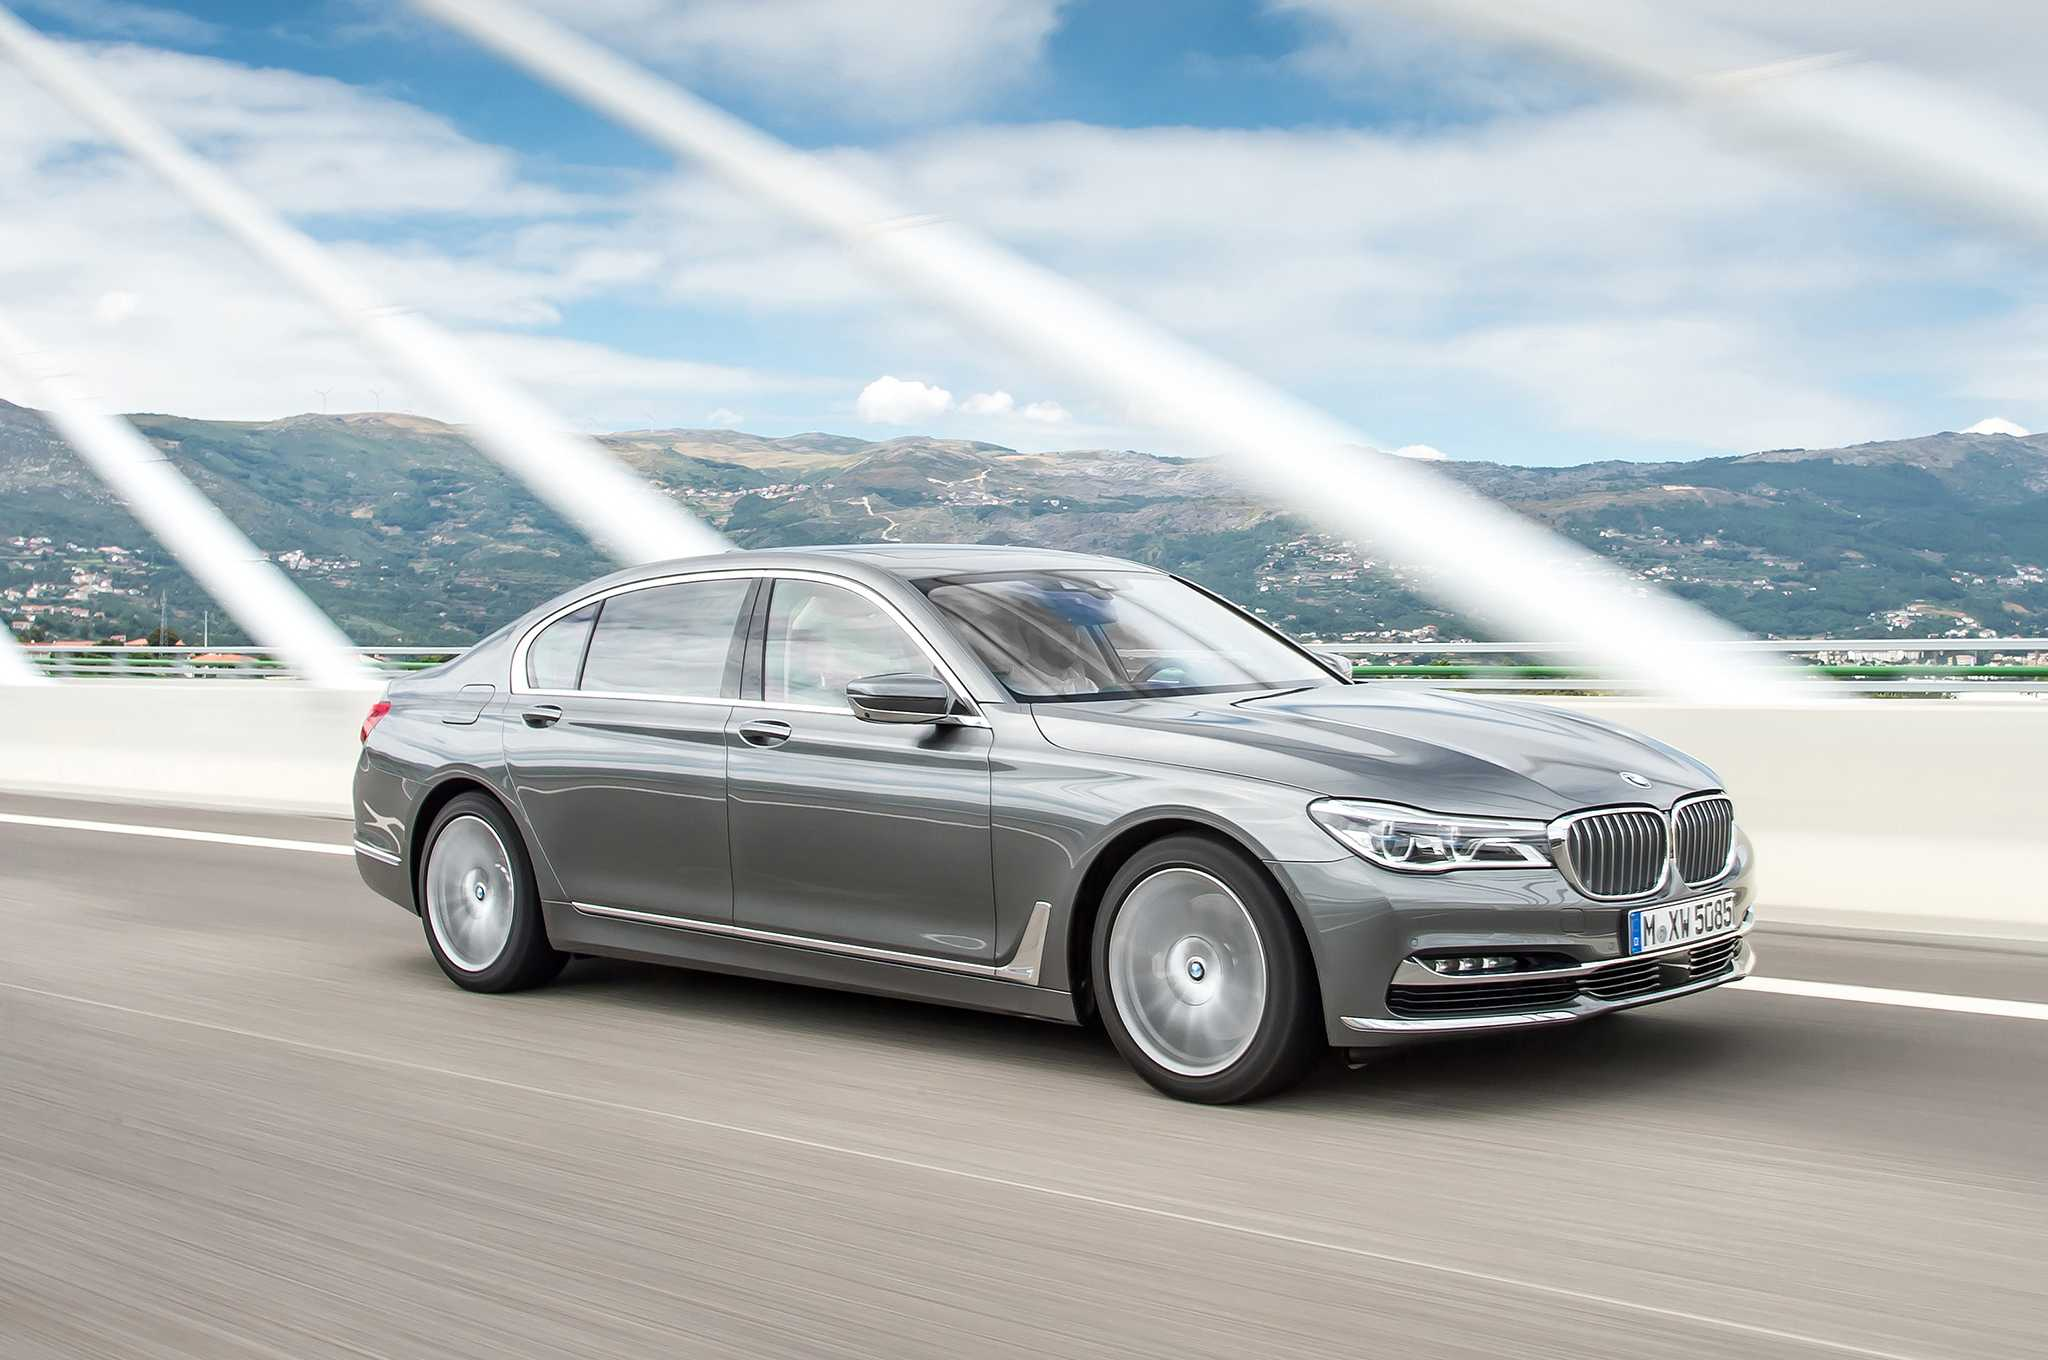 BMW750d Is Powered By Quad Turbo Diesel Engine